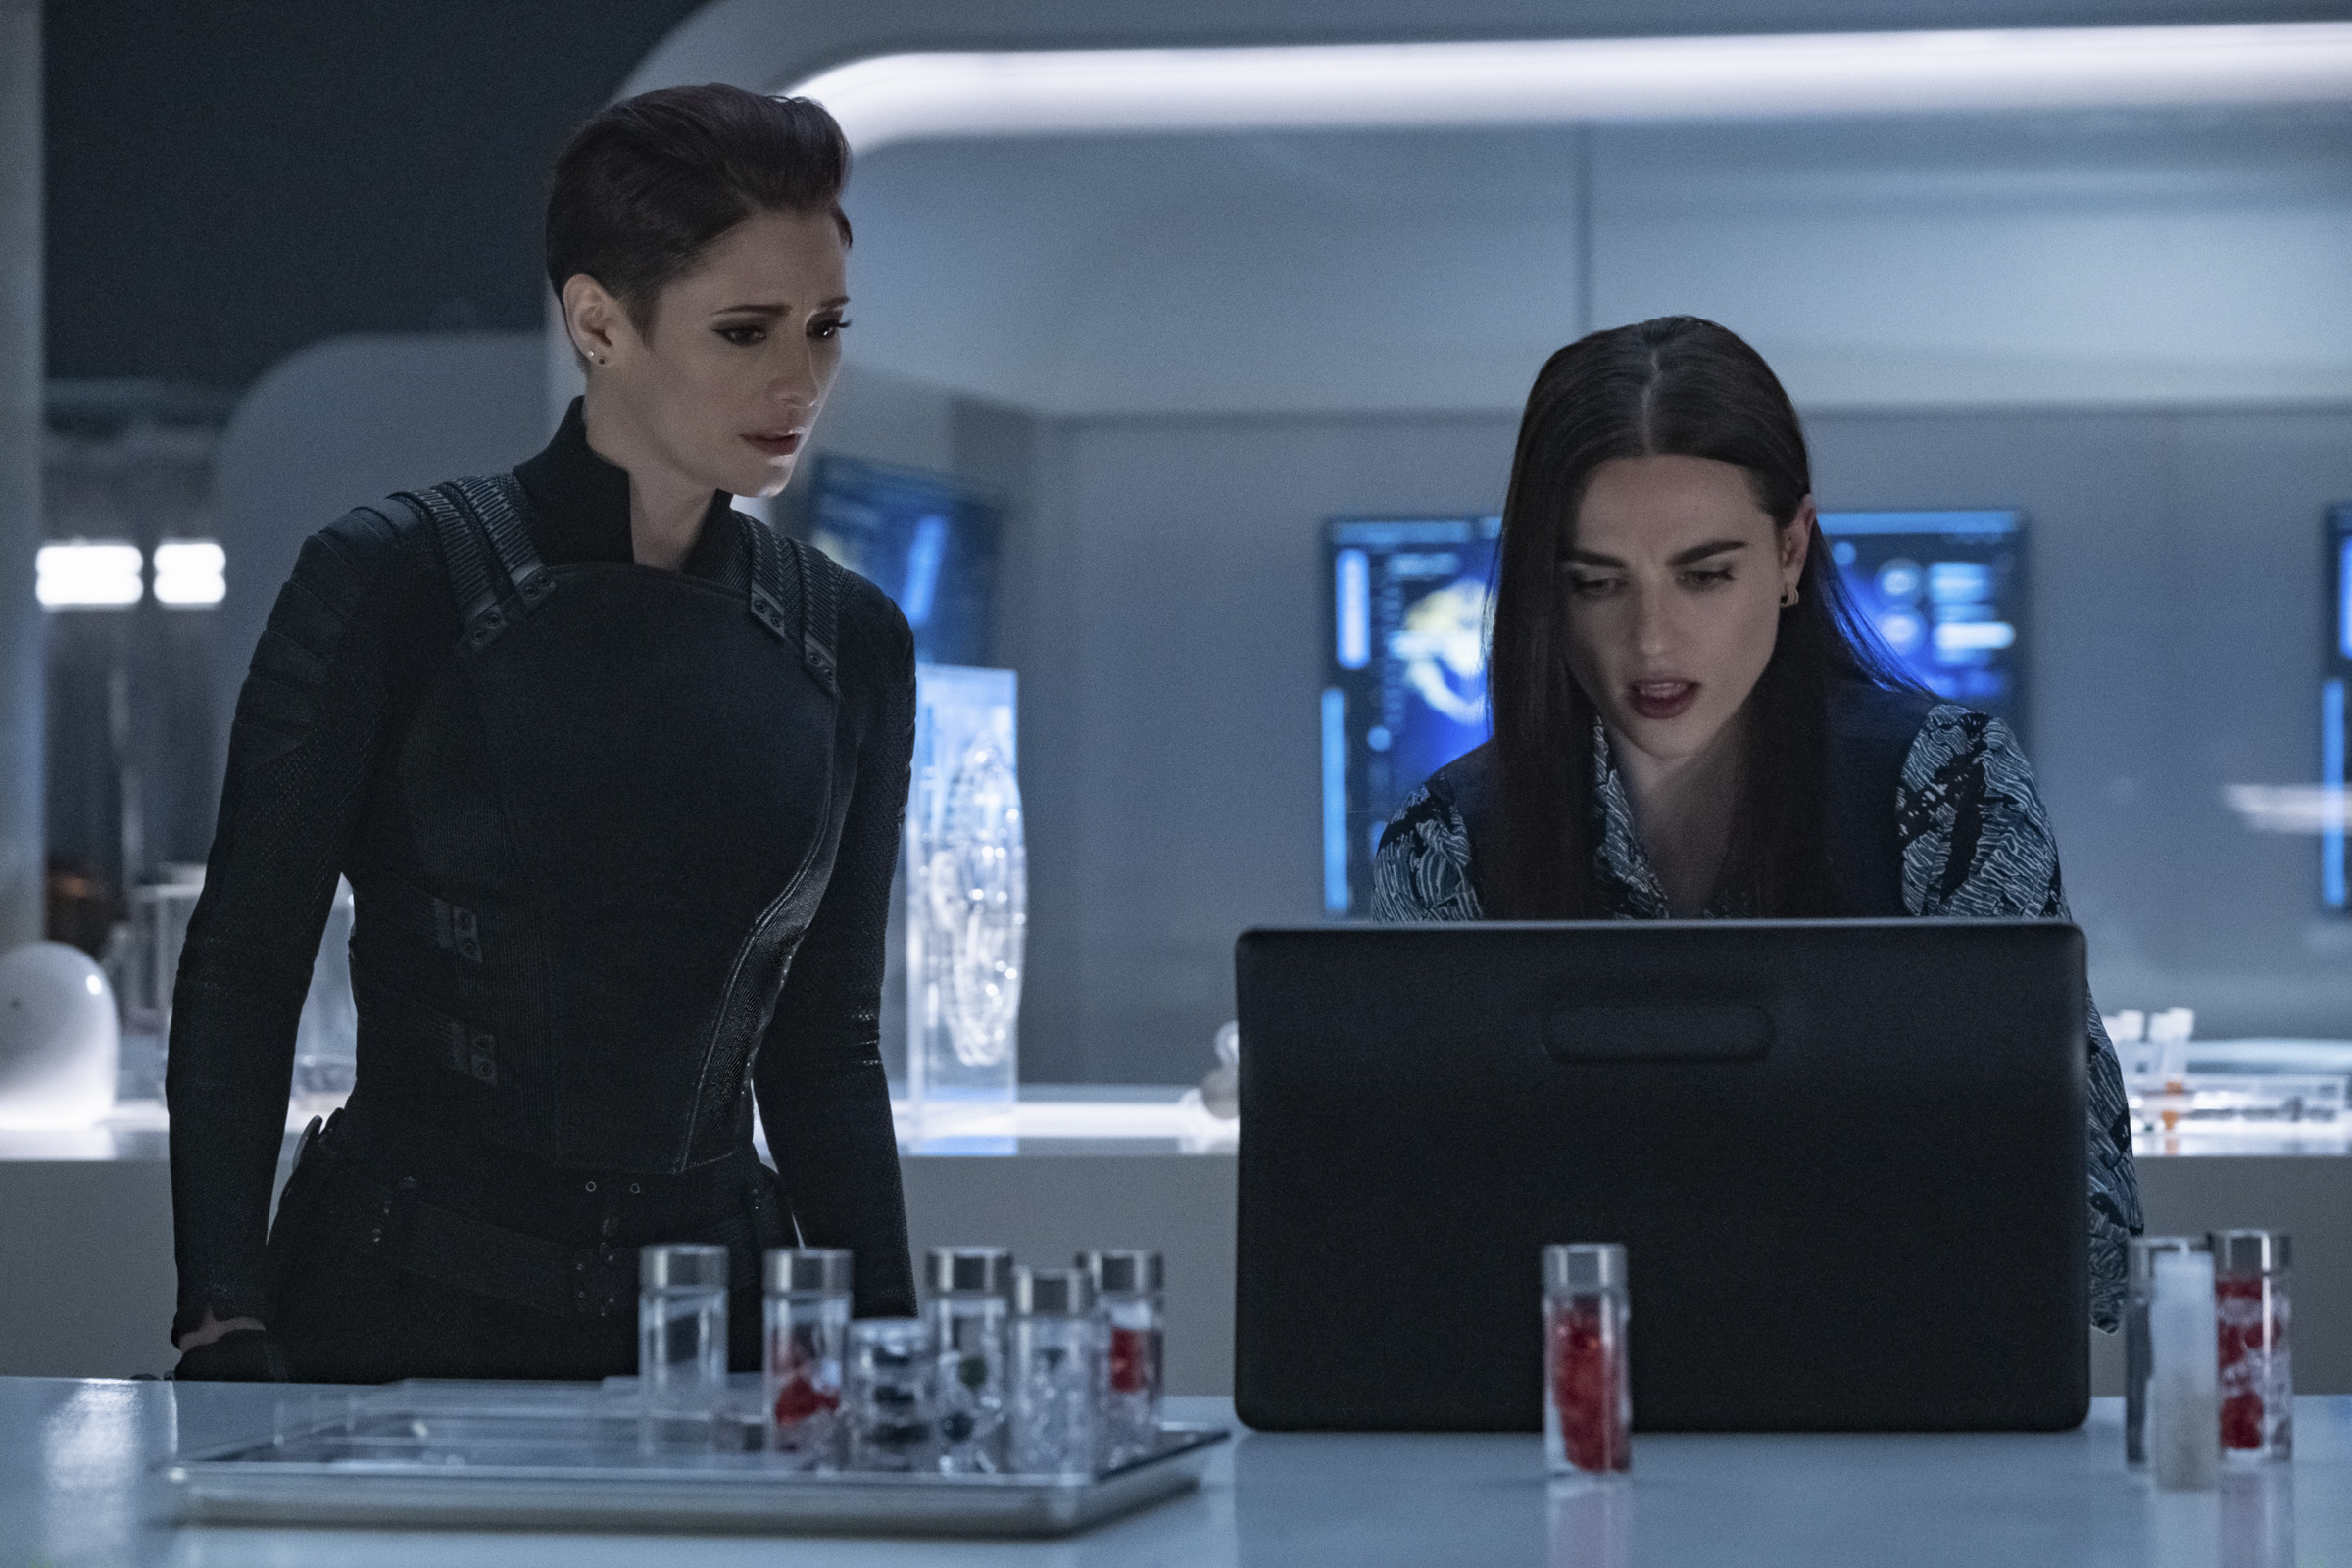 Alex Danvers and Lena Luthor in the lab